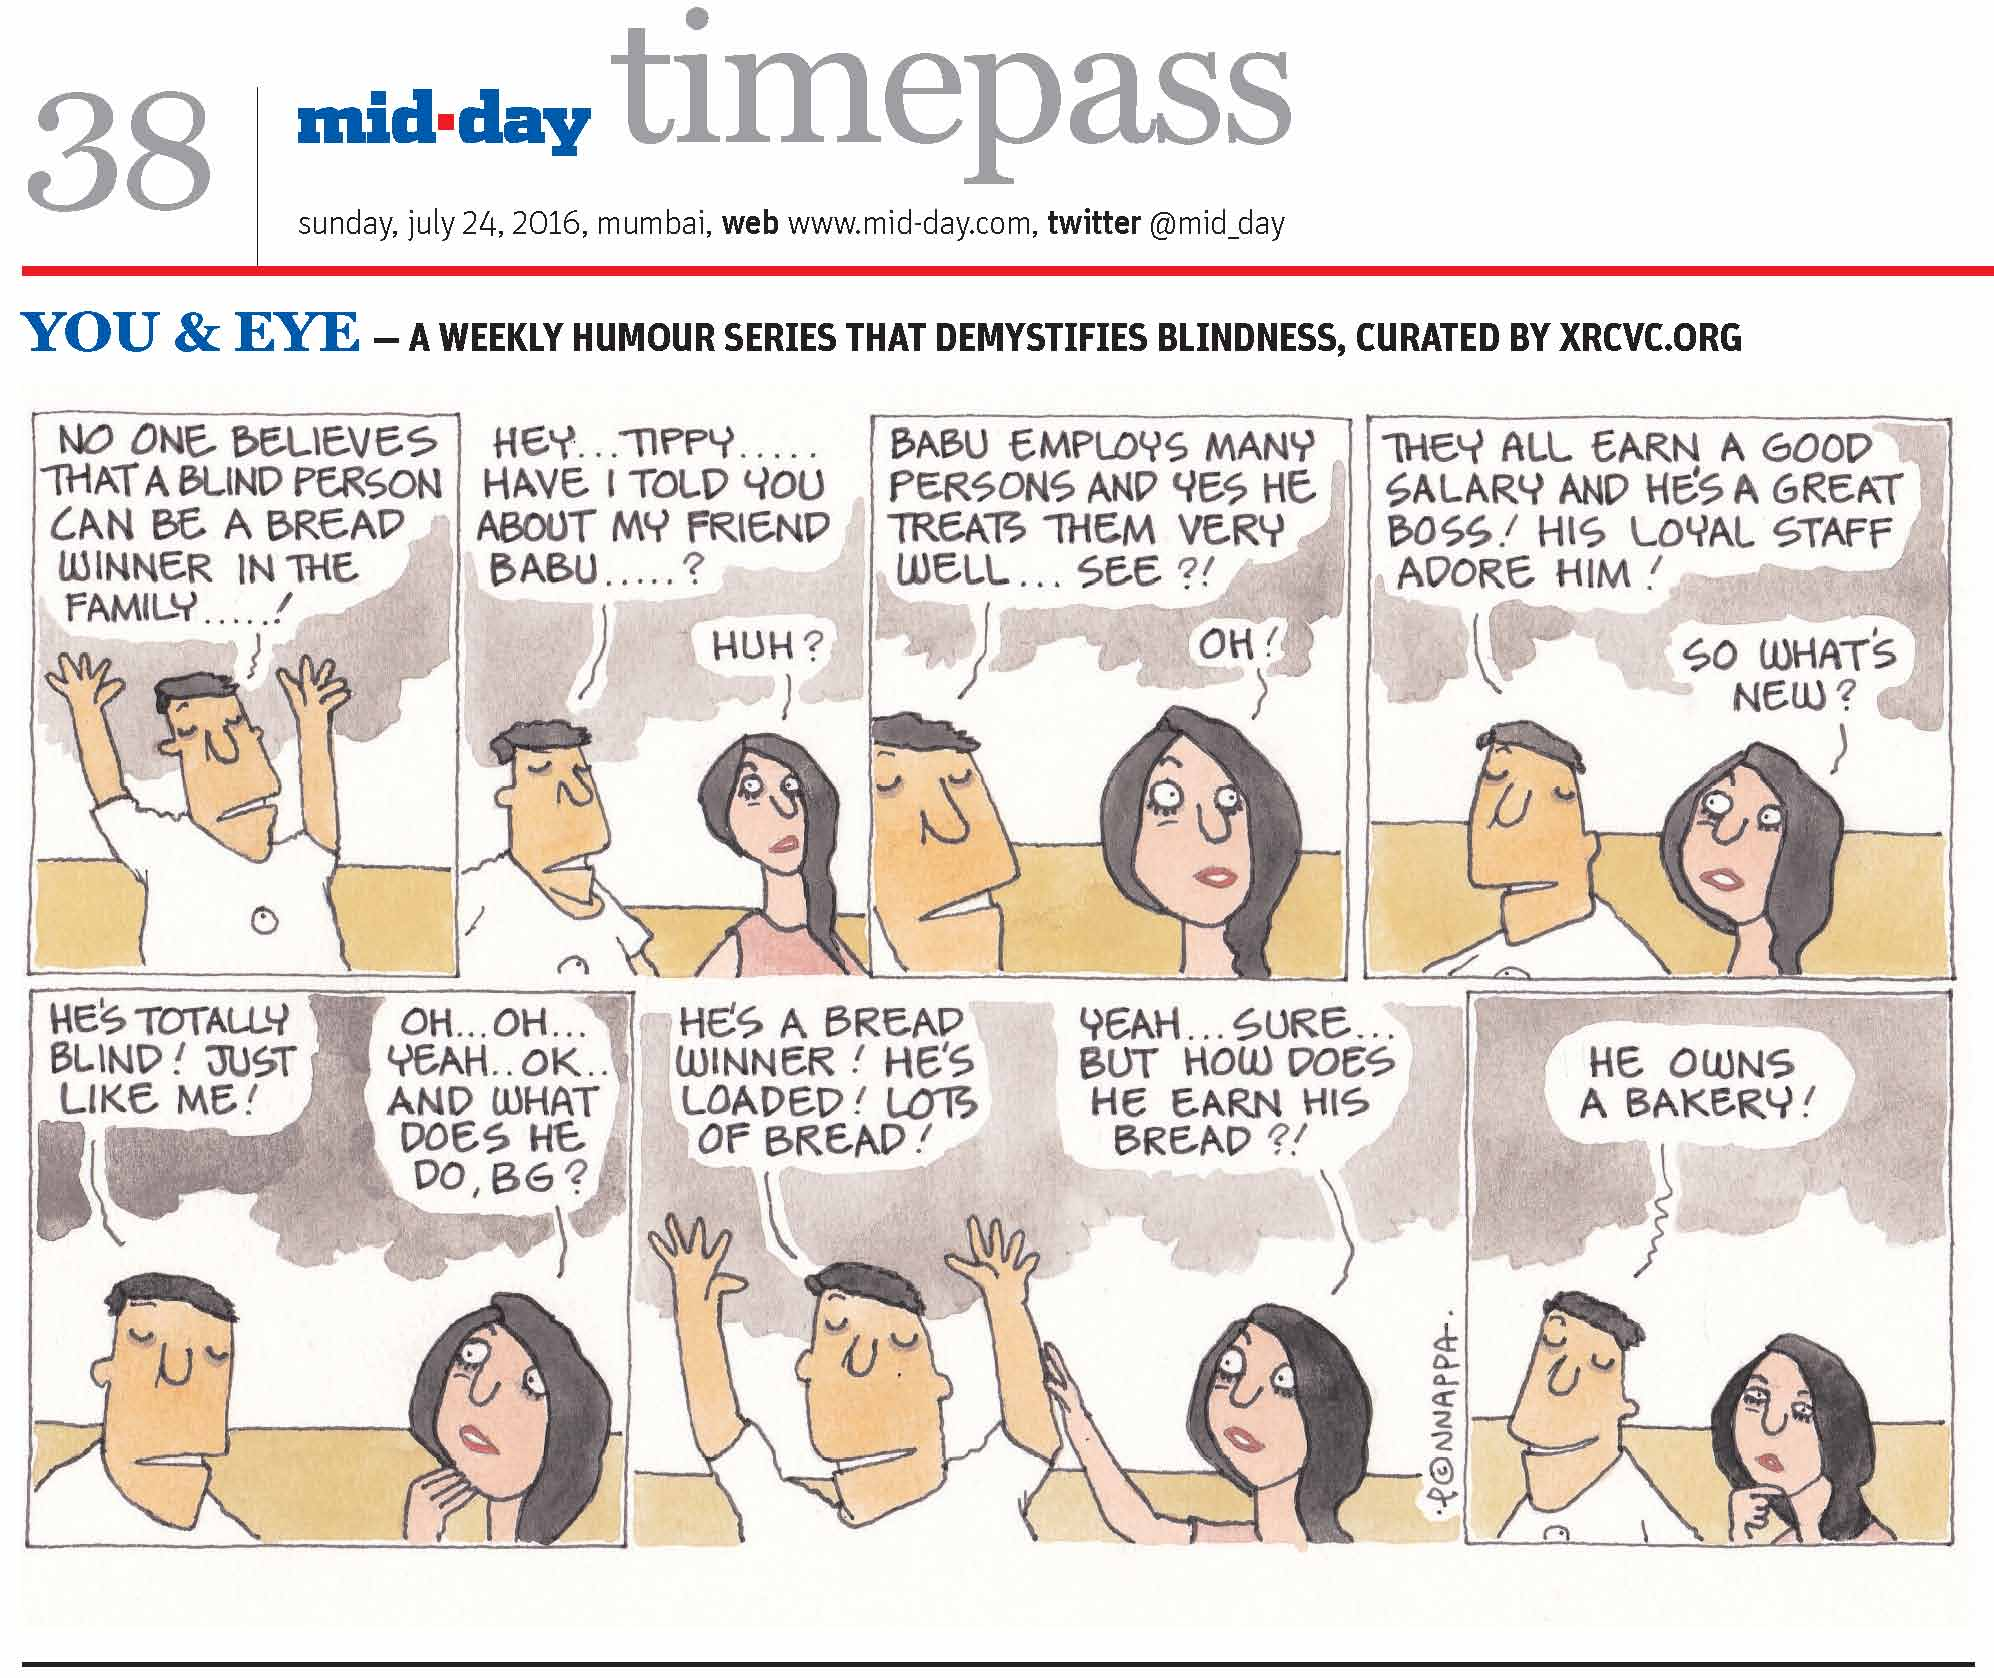 Page 38 mid-day timepass, sunday, july 24, 2016, mumbai, web: www.mid-day.com, twitter @mid_day YOU & EYE � A WEEKLY HUMOUR SERIES THAT DEMYSTIFIES BLINDNESS, CURATED BY XRCVC.ORG Image description: A cartoon strip with 7 frames� Frame 1: (The visually impaired man � BG � with his arms stretched straight upwards) BG: No one believes that a blind person can be a bread winner in the family�! Frame 2: (BG speaking to his sighted friend � Tippy) BG: Hey� Tippy� Have I told you about my friend, Babu�? Tippy: Huh? Frame 3: (A close-up of both as they continue talking) BG: Babu employs many persons and yes he treats them very well� see?! Tippy: Oh! Frame 4: (A close-up of both as they continue talking) BG: They all earn a good salary and he's a great boss! His loyal staff adore him! Tippy: So what's new? Frame 5: (BG continues talking while Tippy touches her right hand to her chin in surprise) BG: He's totally blind! Just like me! Tippy: Oh� Oh� Yeah� OK� and what does he do, BG? Frame 6: